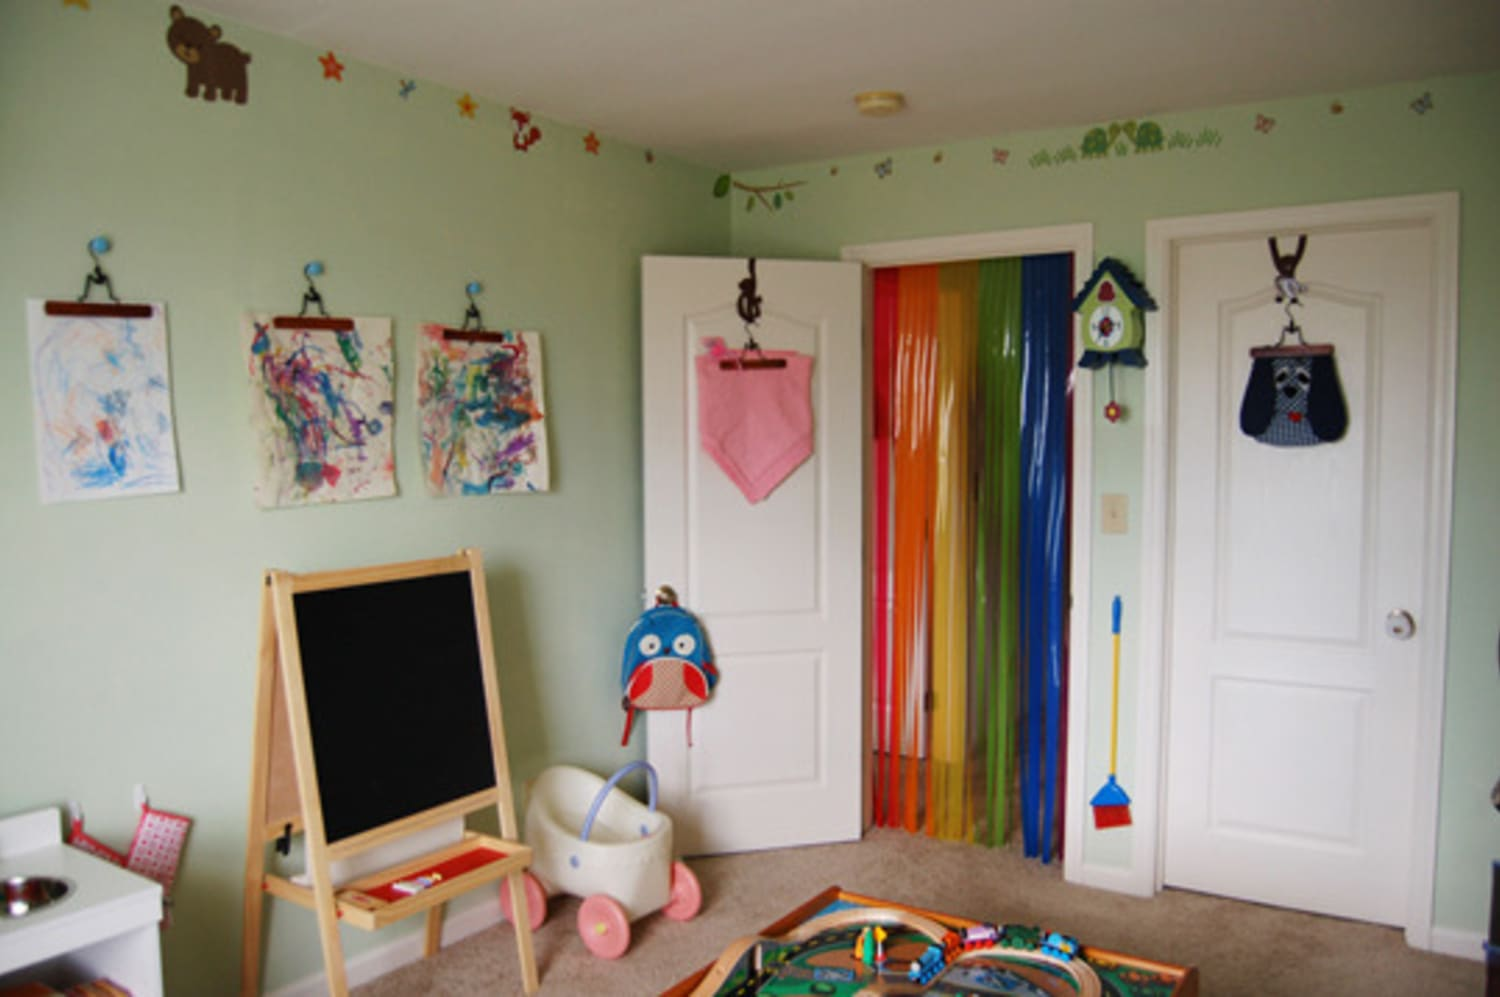 This Super Simple System Is the Easiest Way to Organize Your Kids' Artwork